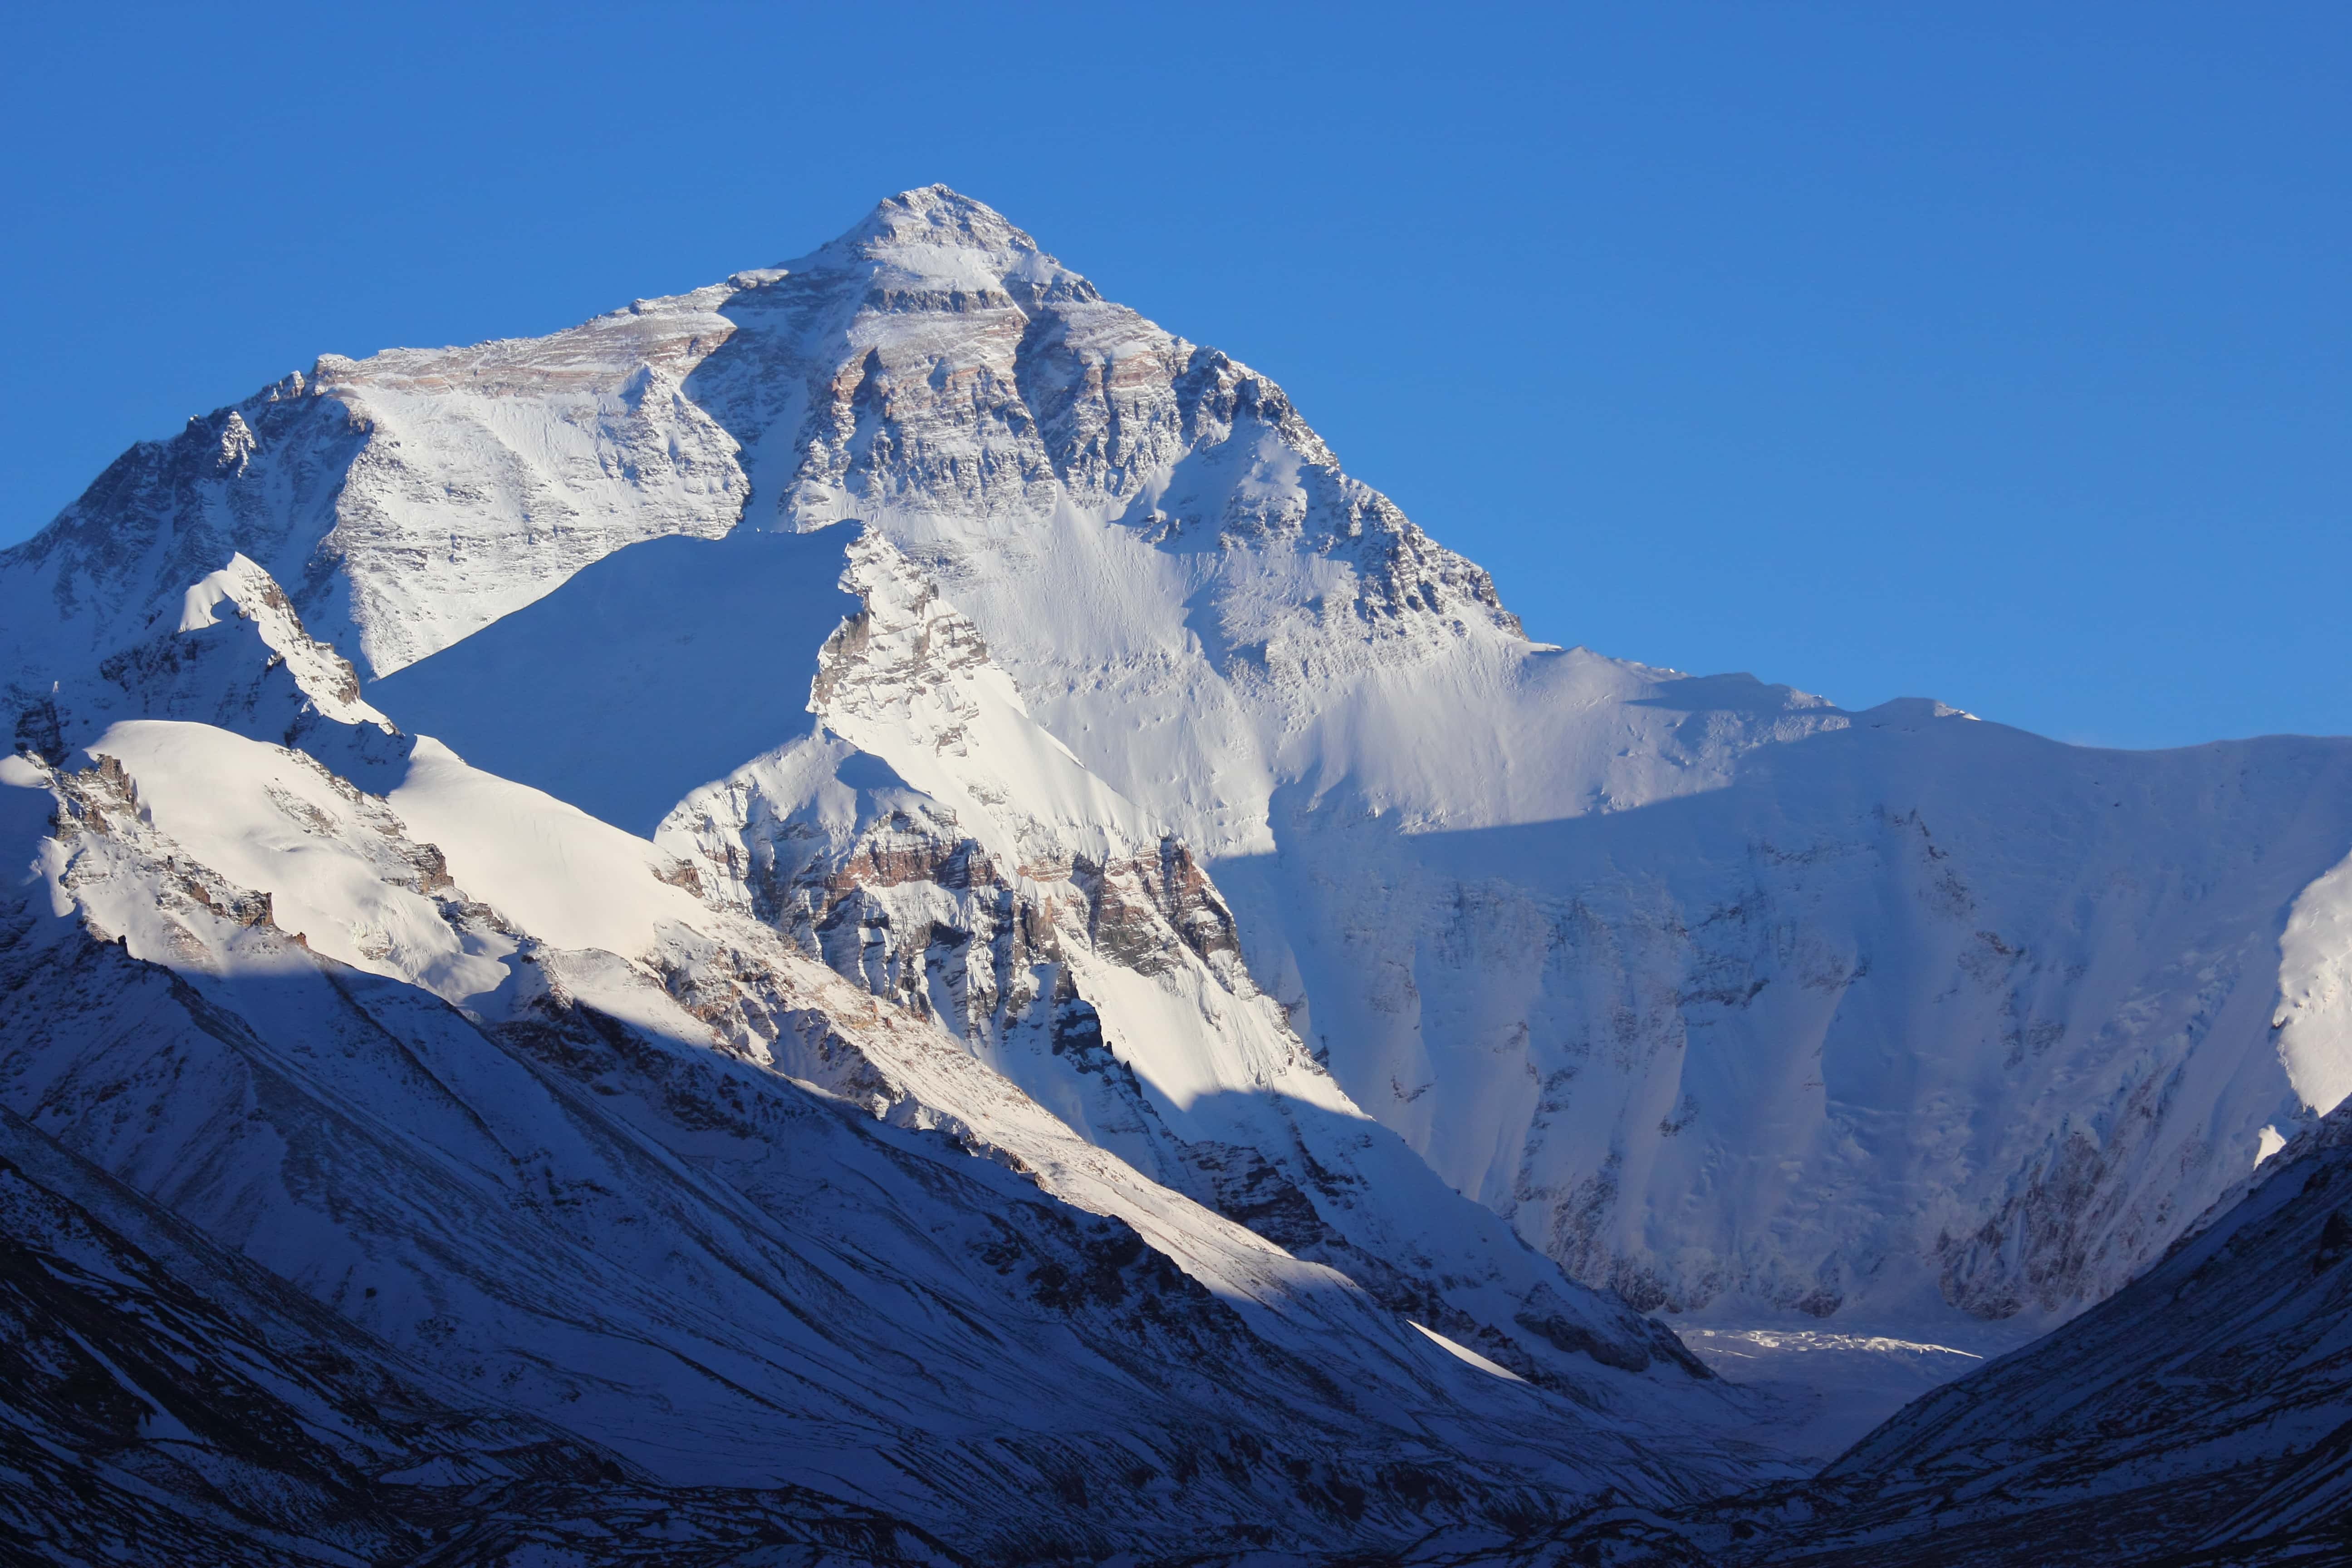 Mount Everest North Face in Tibet